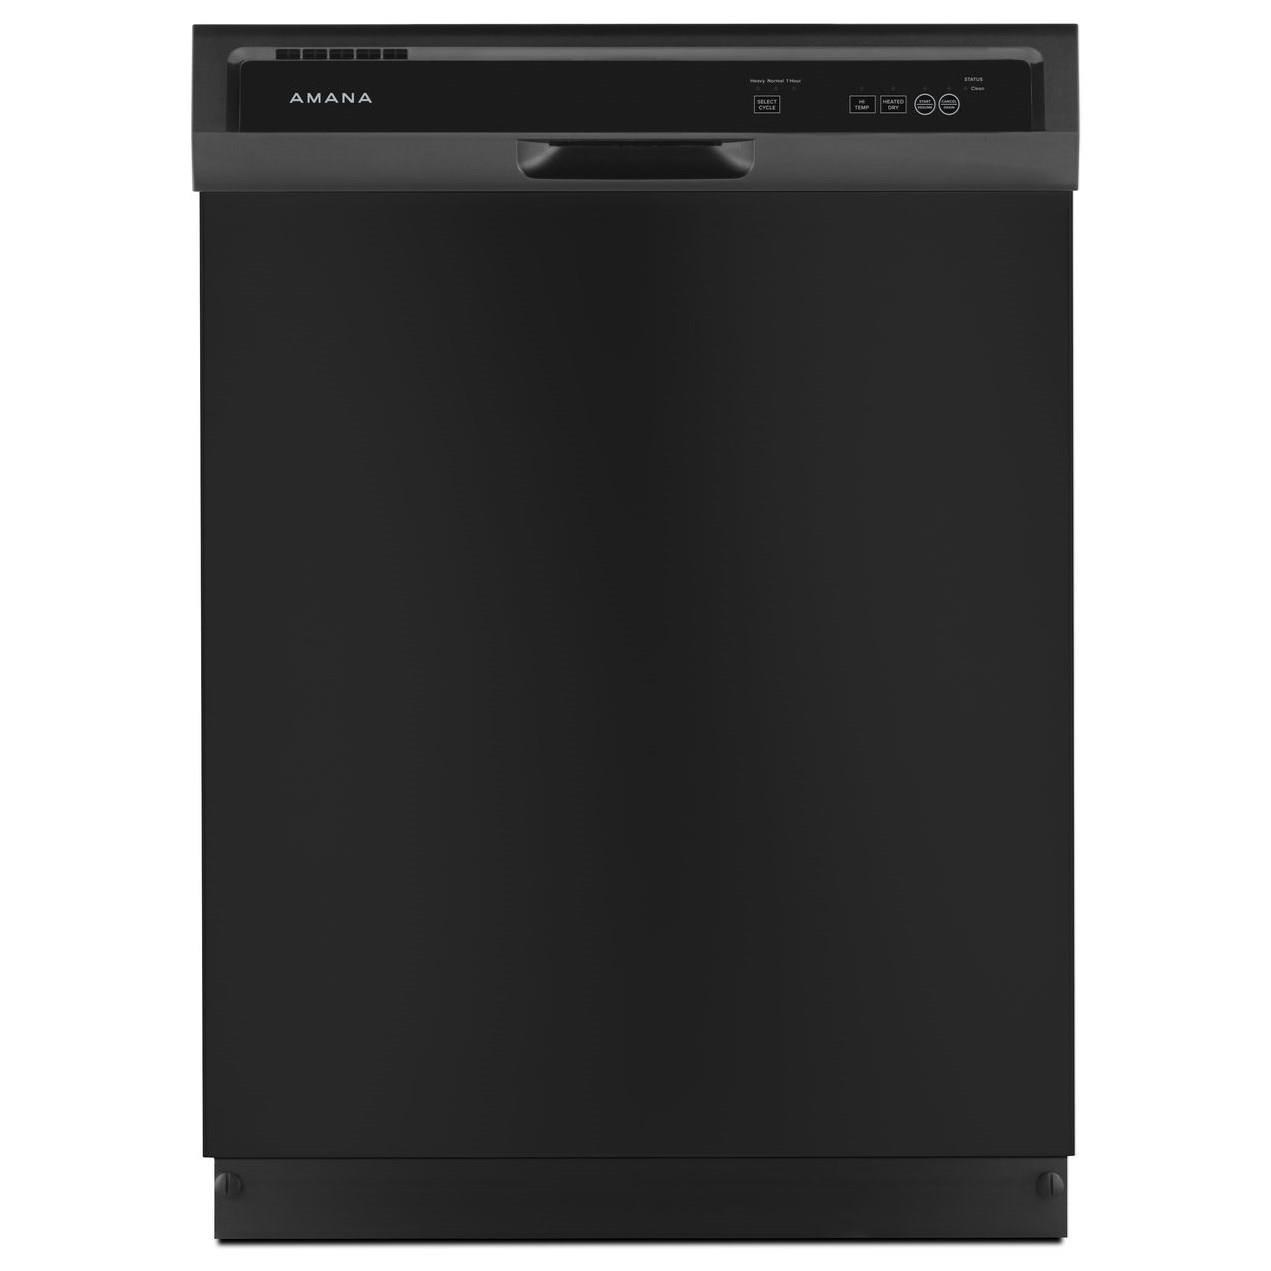 Amana Built-In Dishwashers Amana® Dishwasher with Triple Filter Wash Sy - Item Number: ADB1300AFB